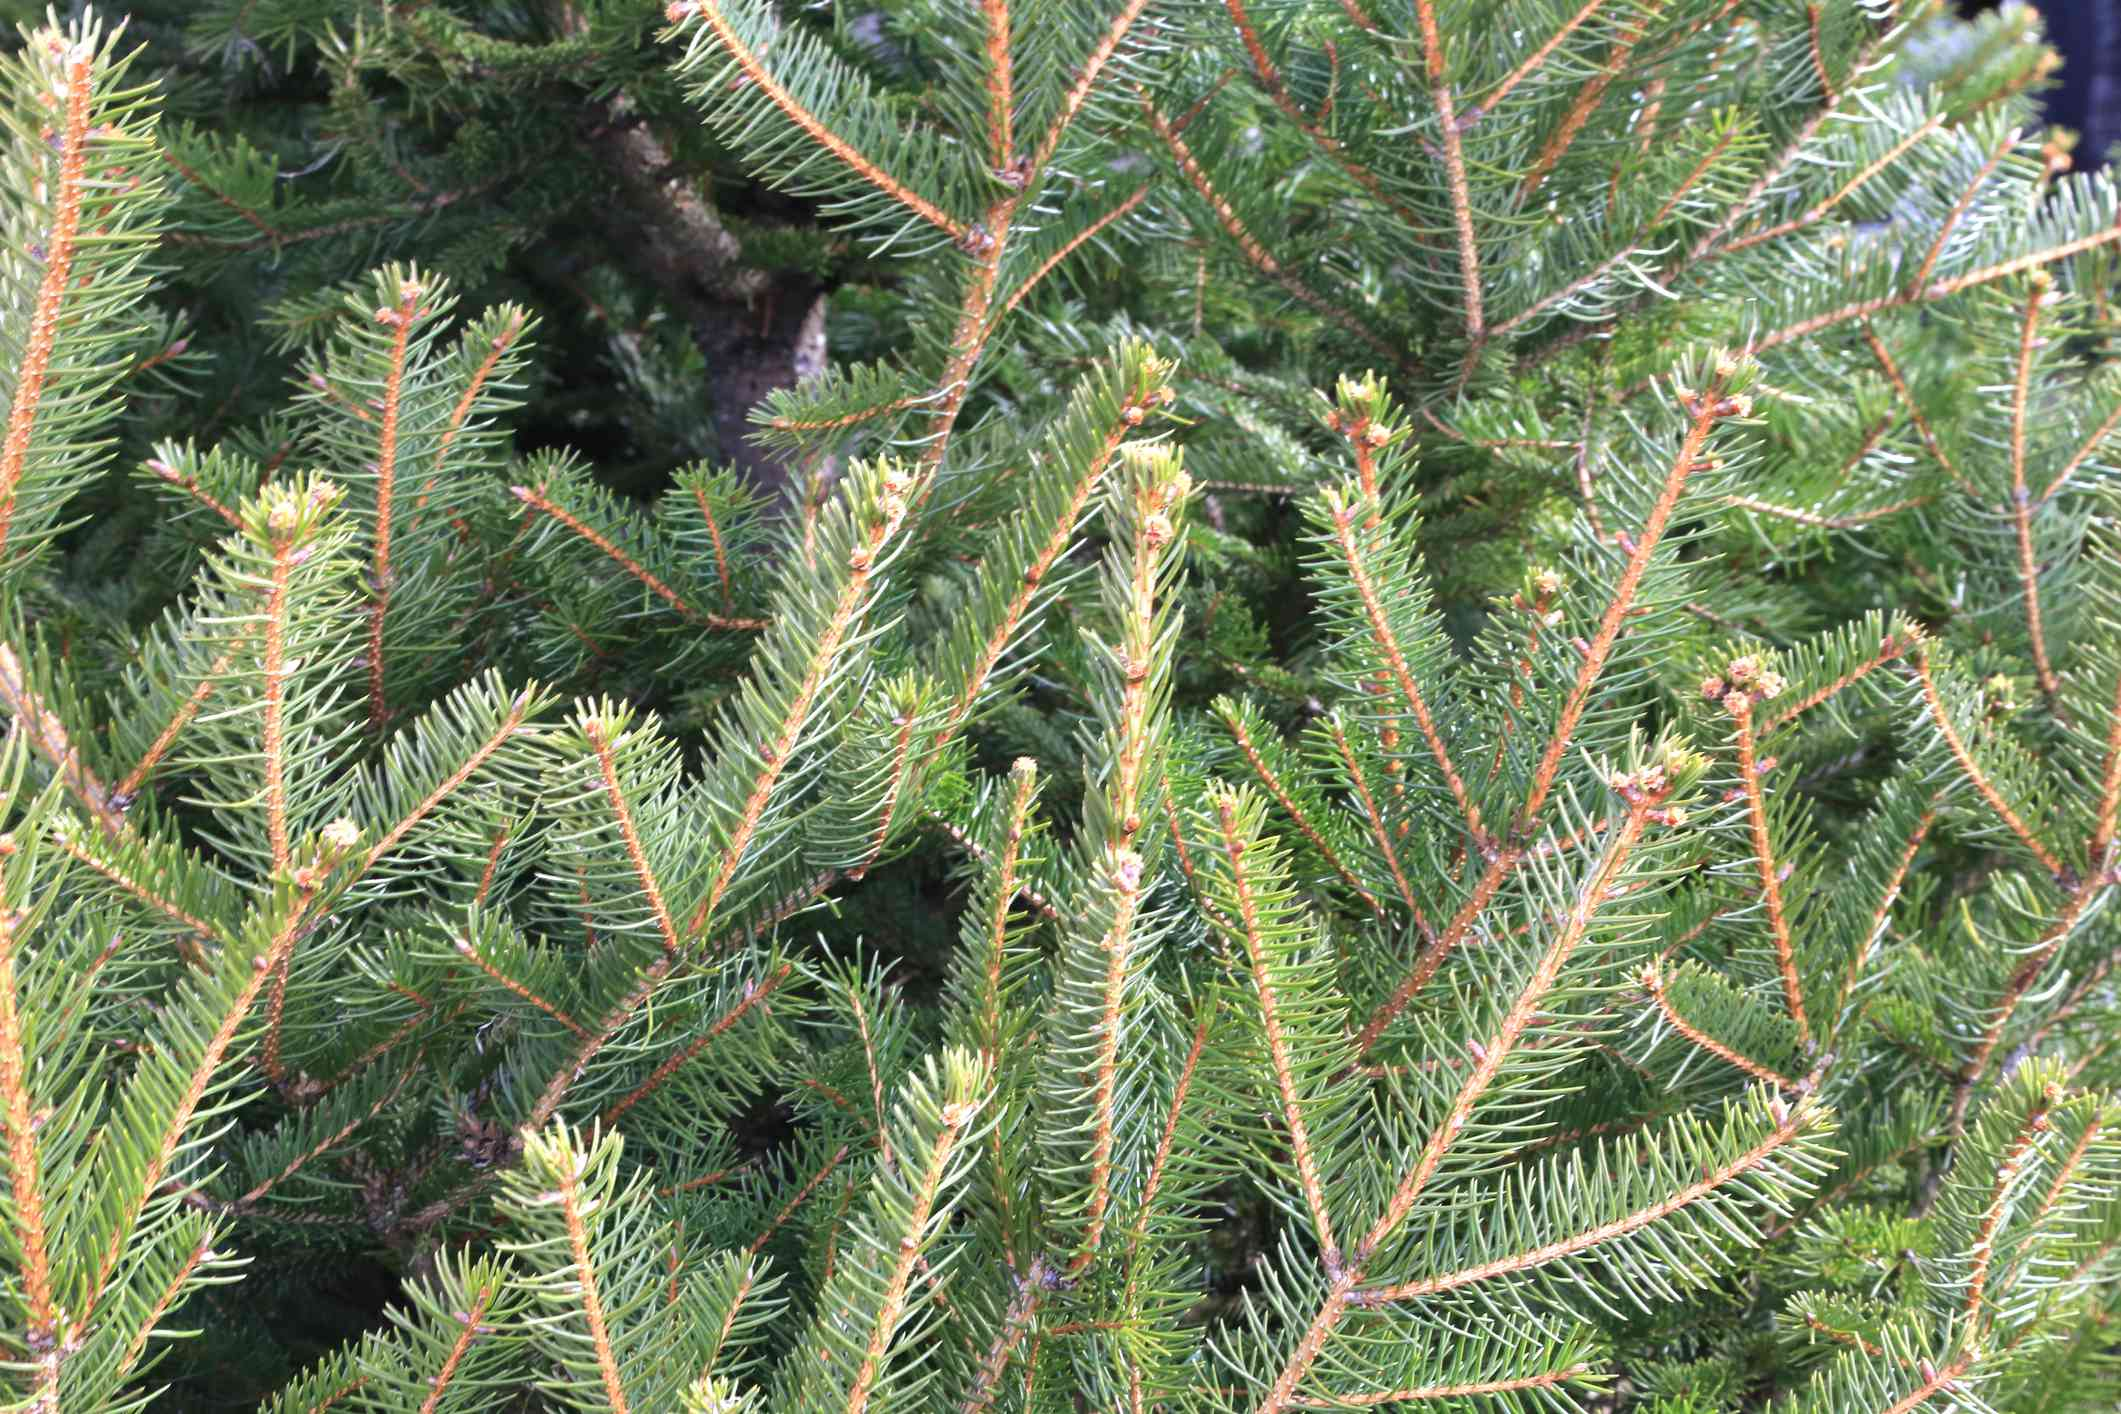 closeup of norway spruce branches with brown twigs and short green needles